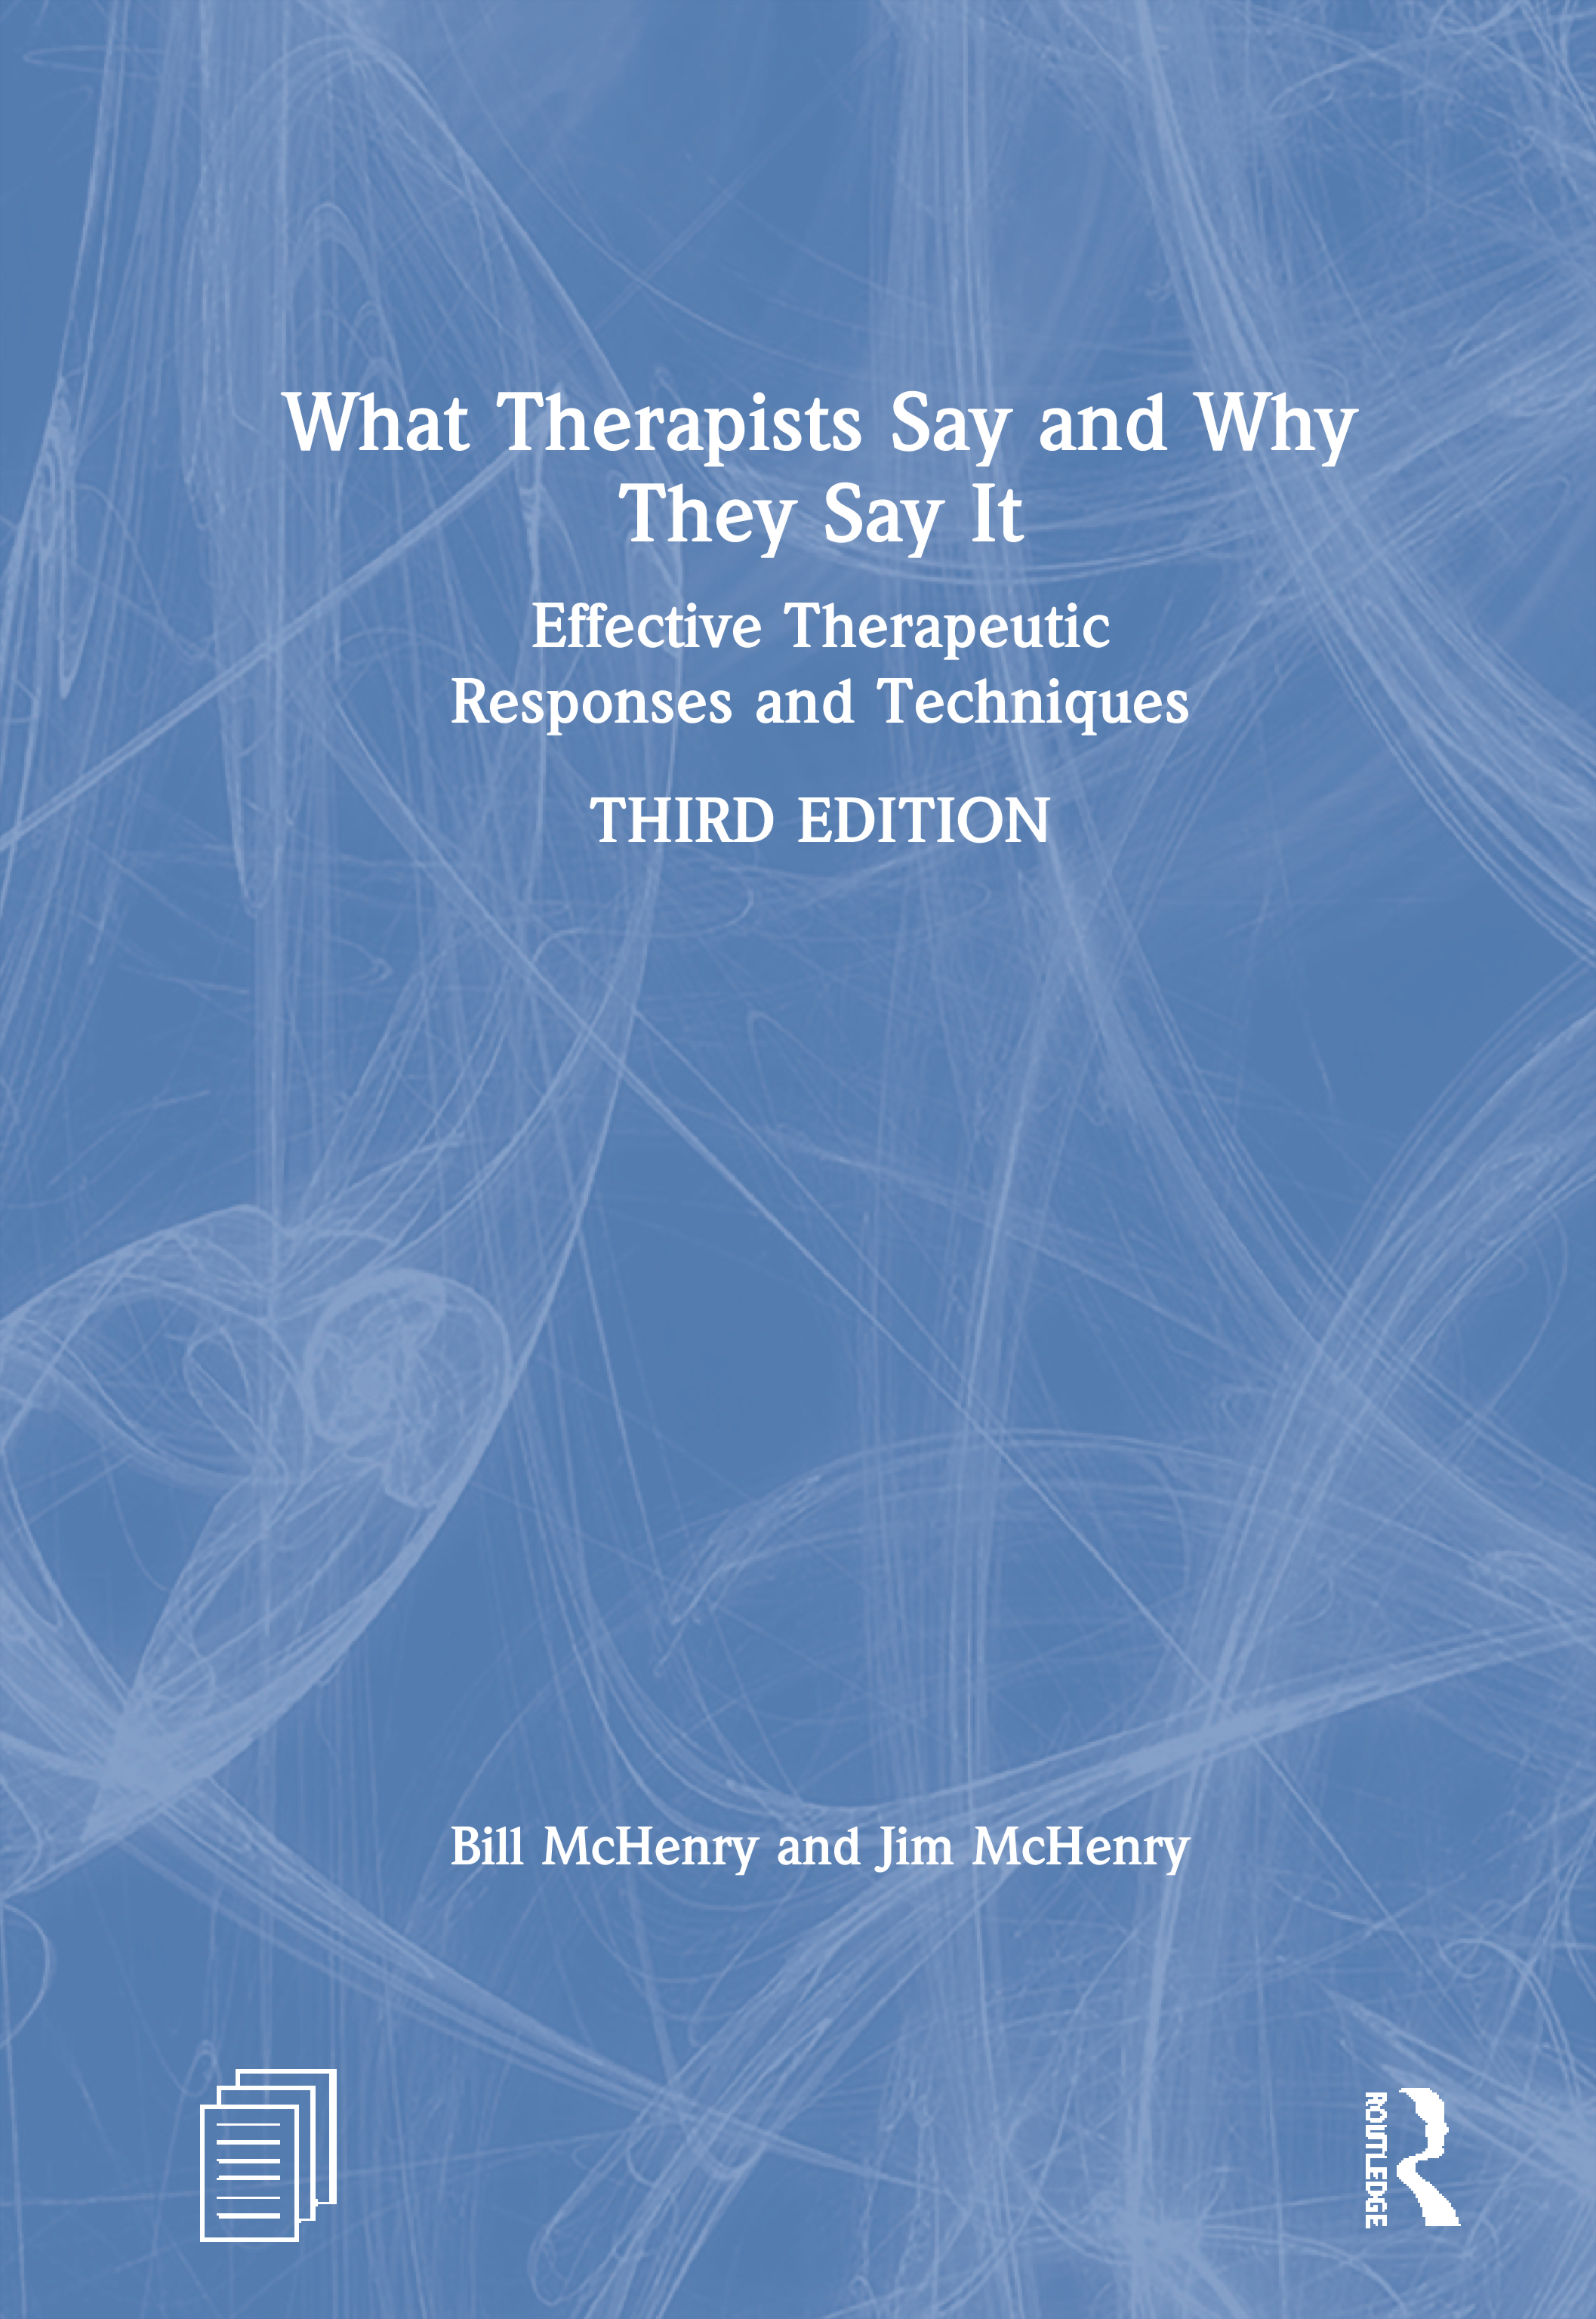 What Therapists Say and Why They Say It: Effective ...